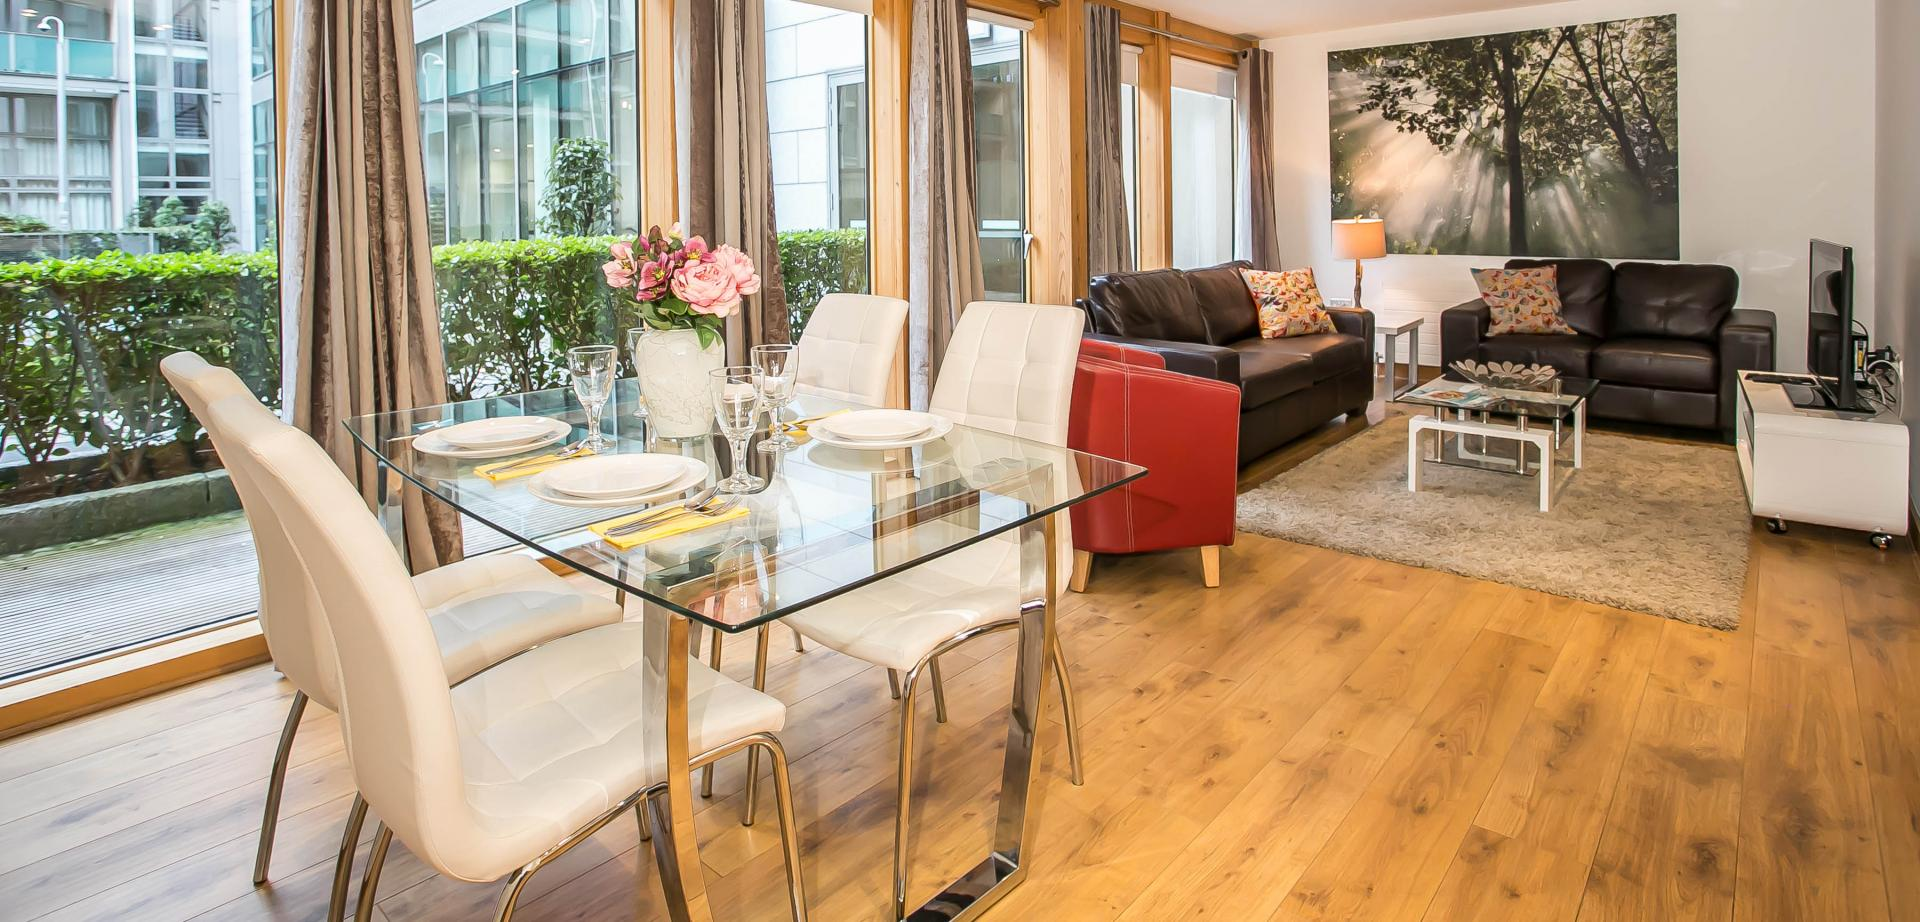 Dining area at North Spencer Dock Apartments, Centre, Dublin